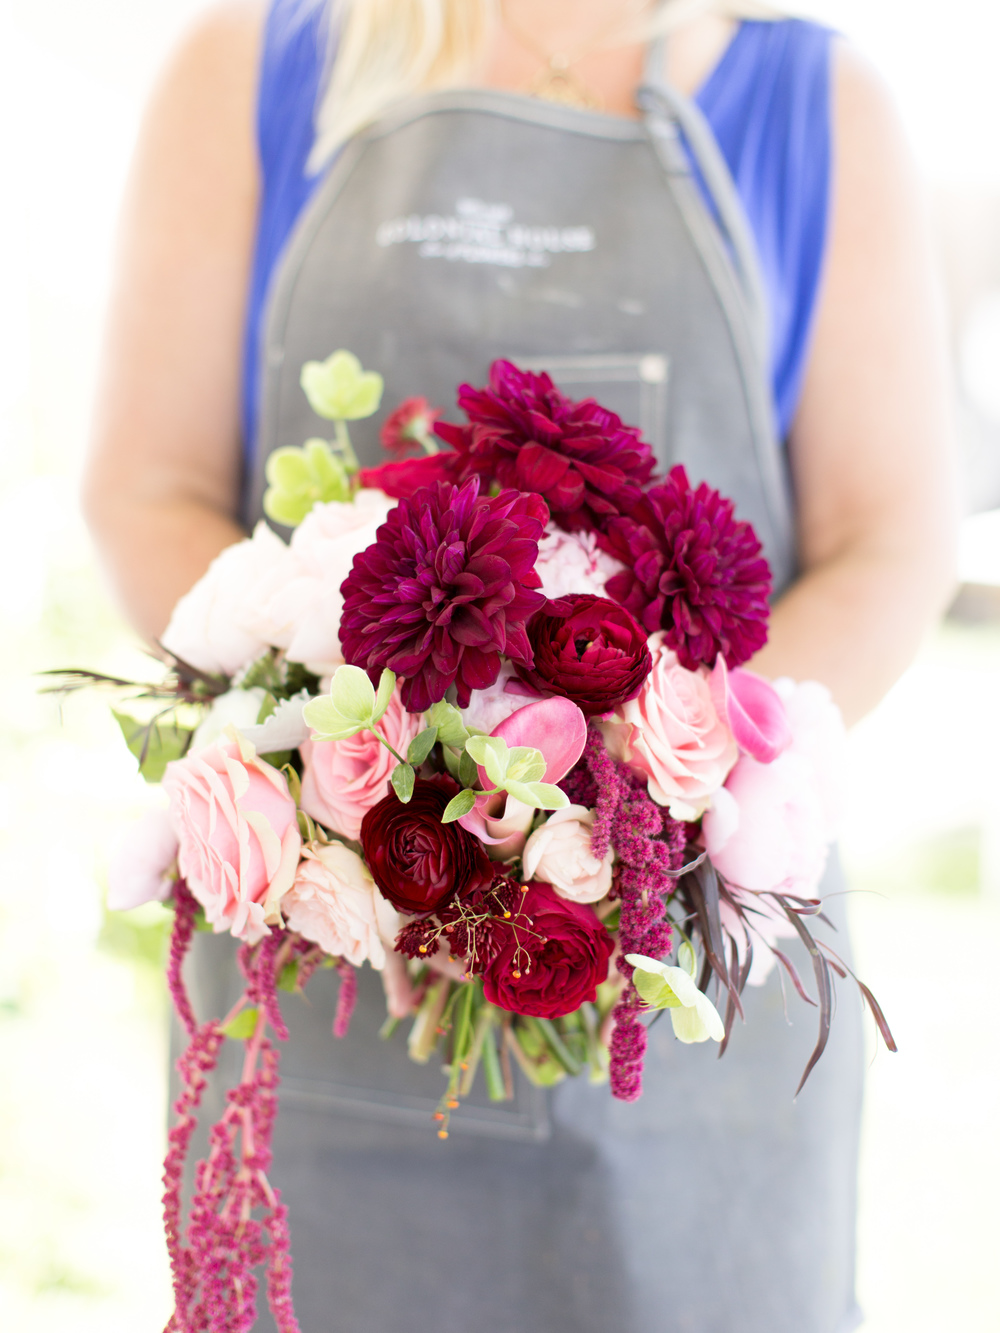 Diy easy bouquet delivery by colonial house of flowers a diy easy bouquet delivery by savannah ga florist colonial house of flowers izmirmasajfo